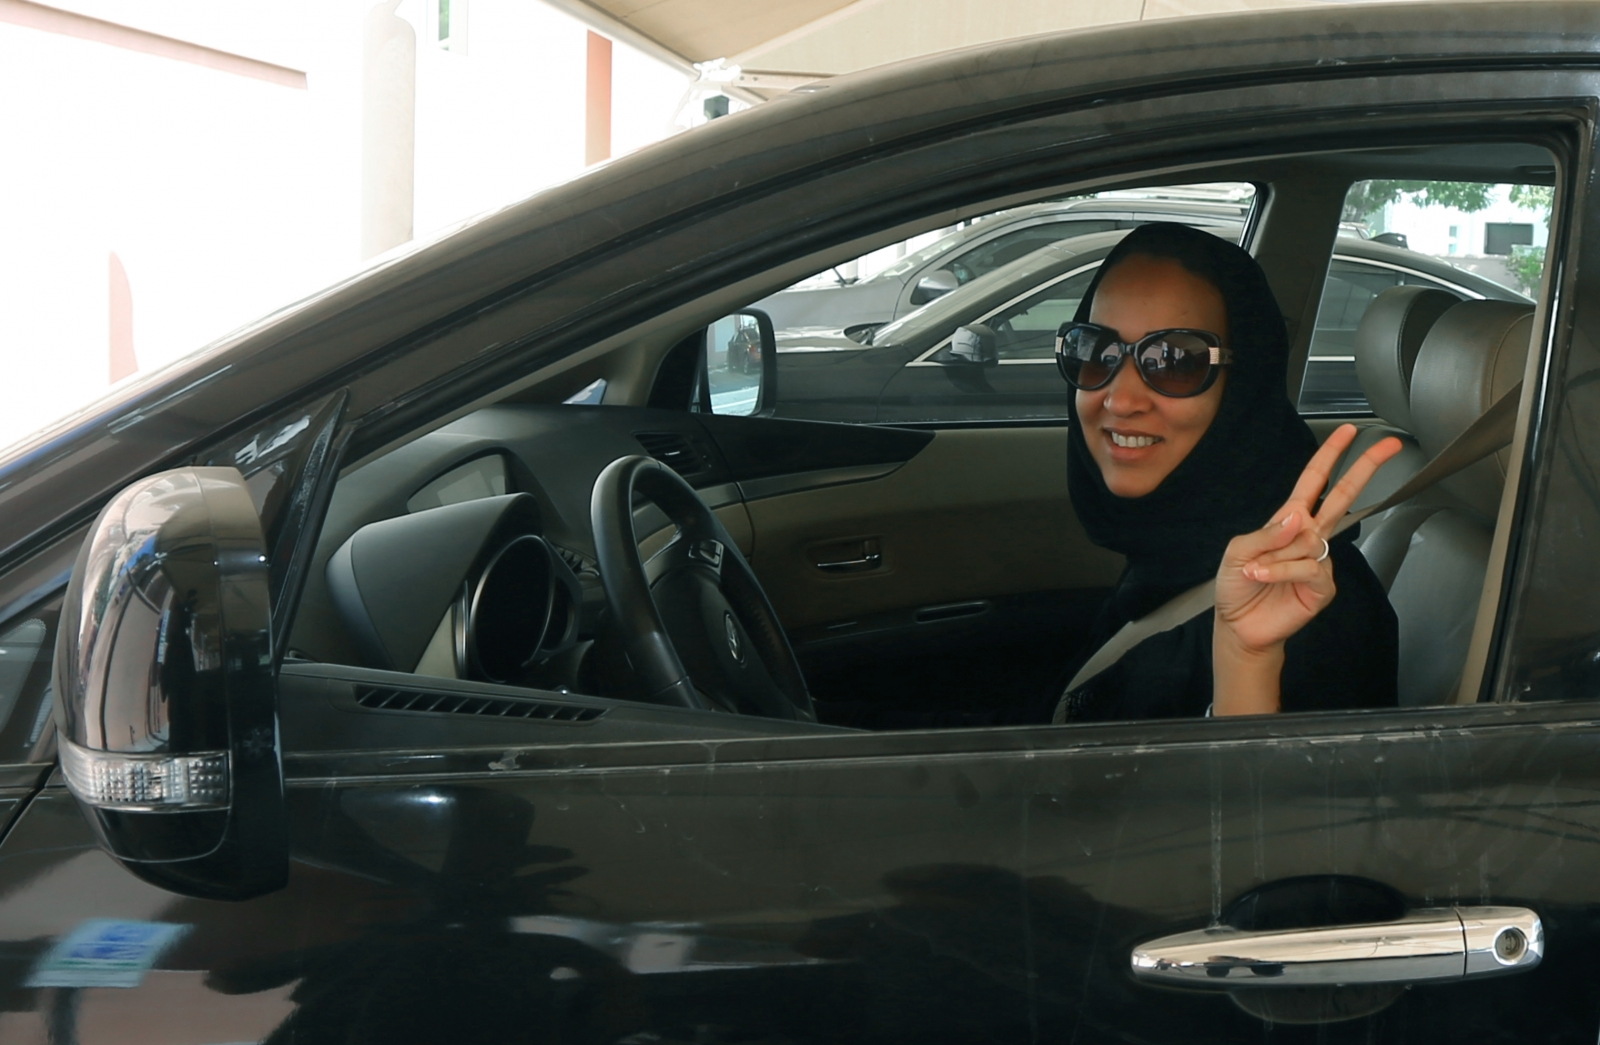 Women who drive 'don't care if they're raped' claims Saudi Arabia historian